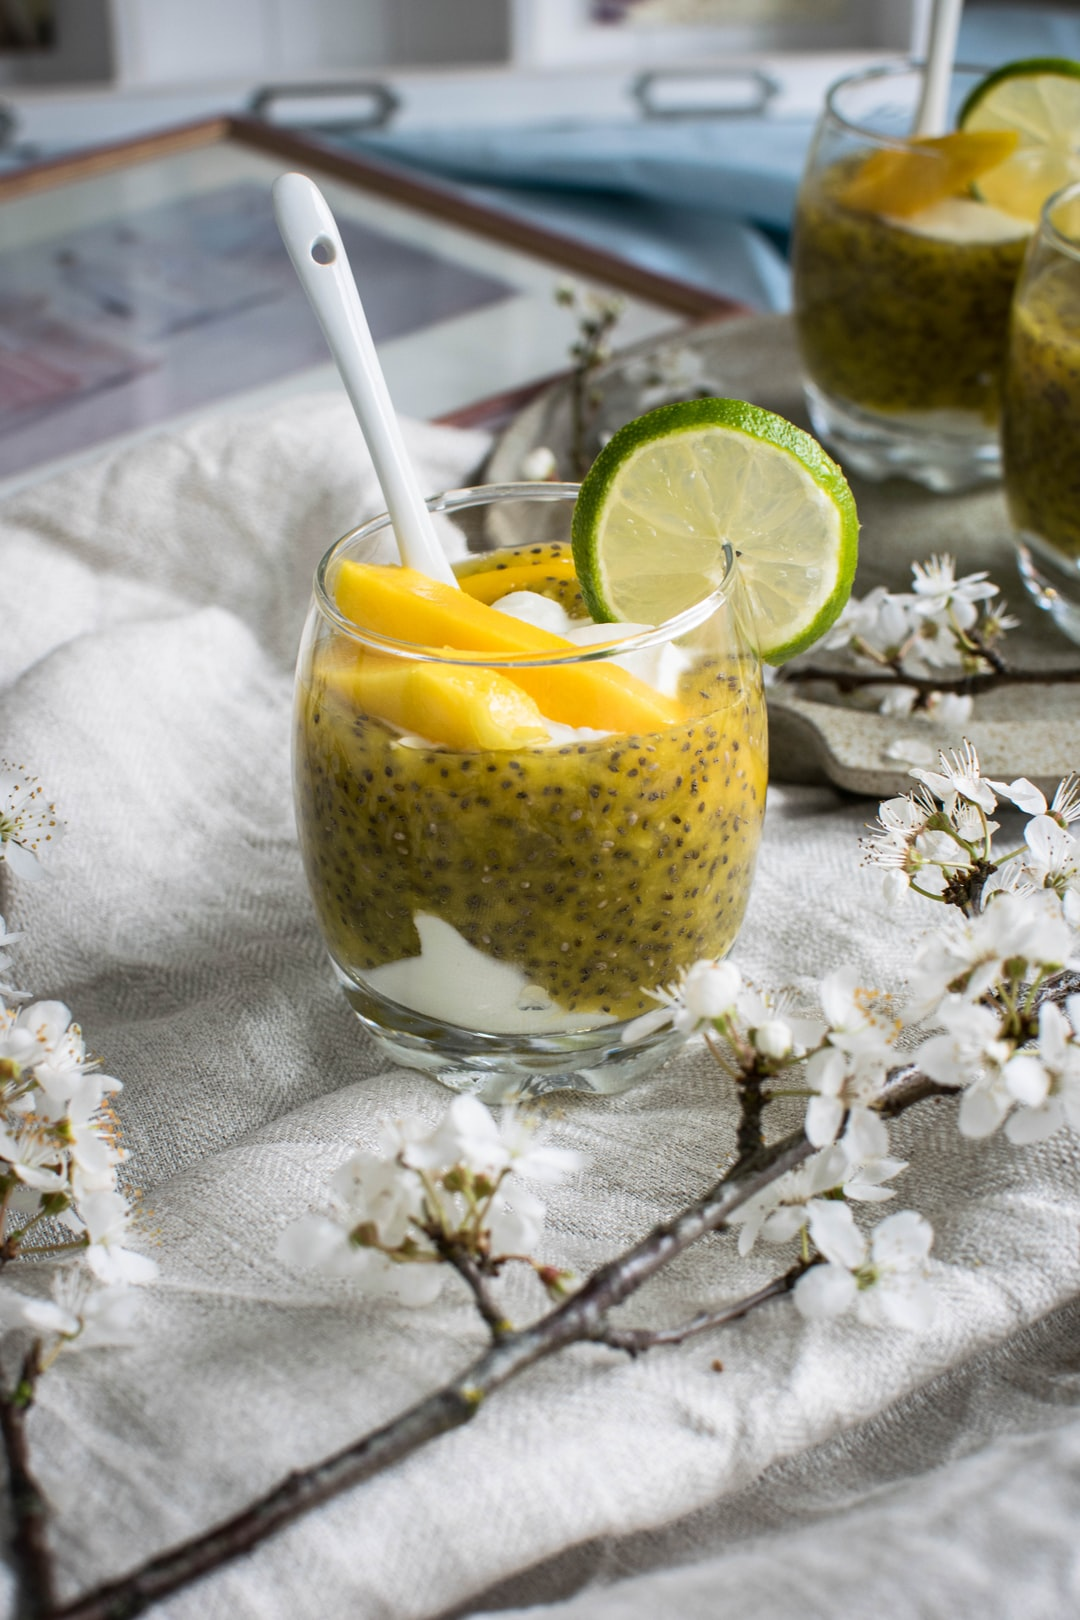 Chia mousse with mango